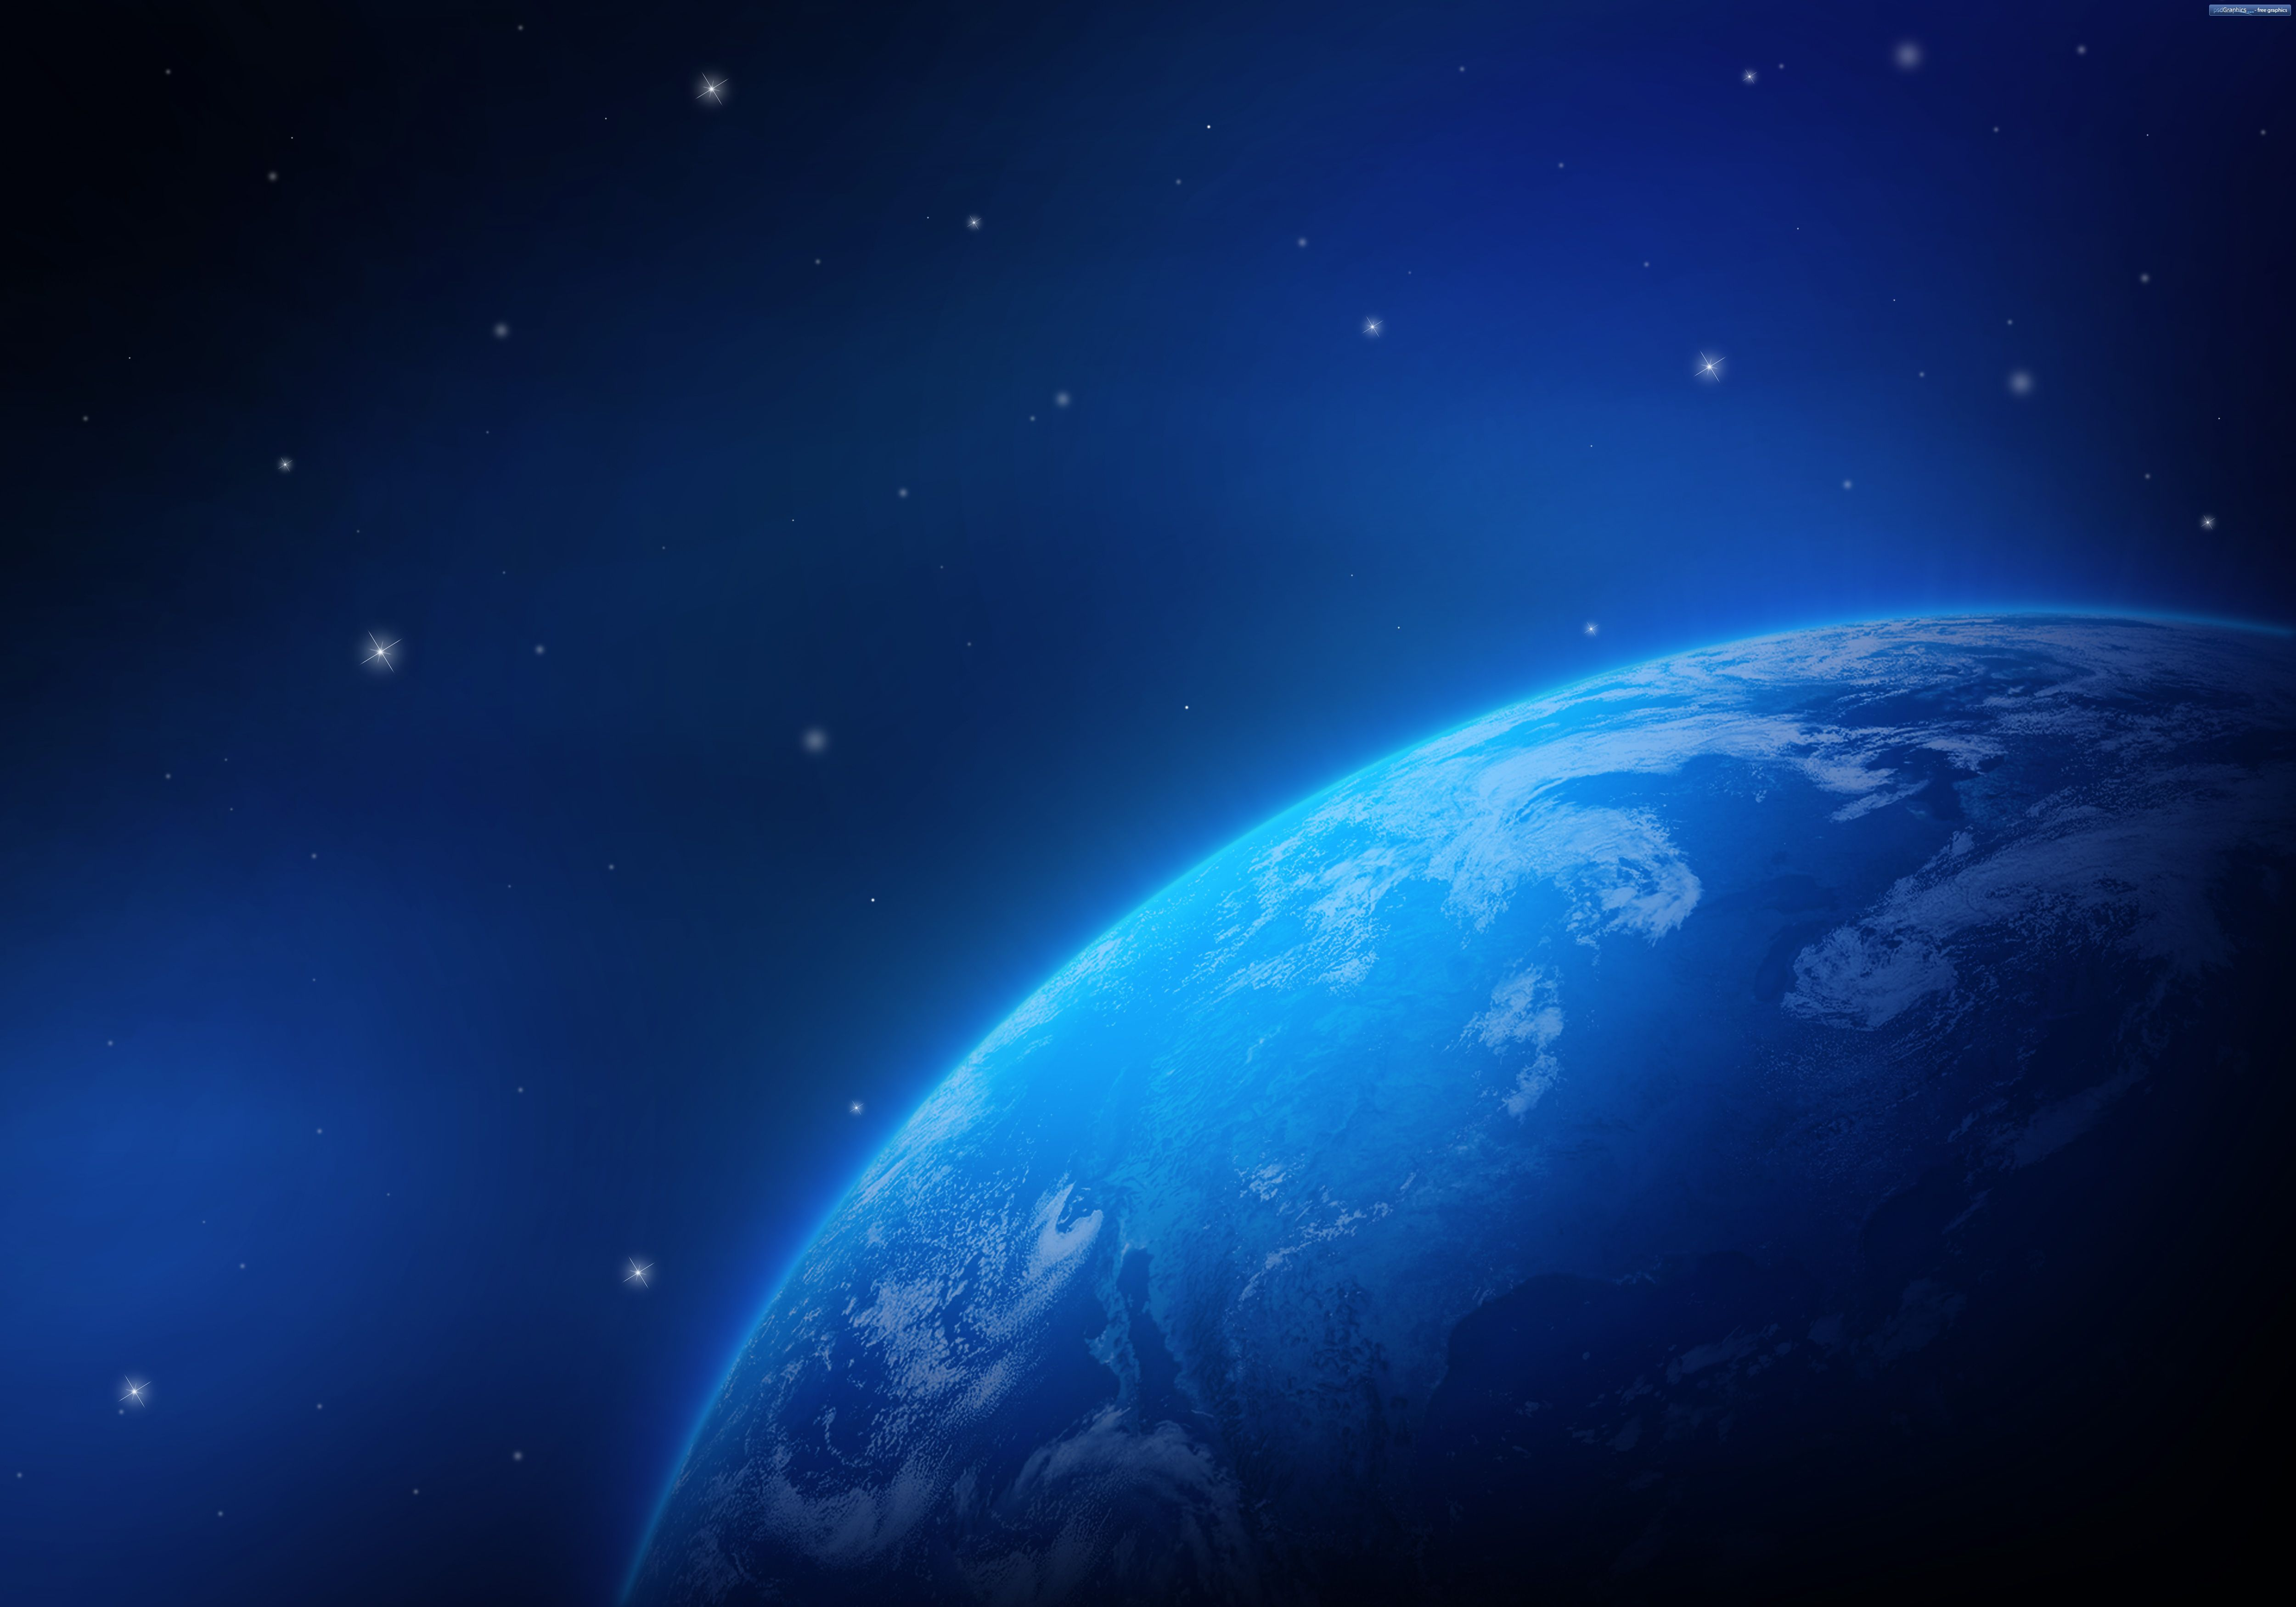 Google Image Result For Http Www Psdgraphics Com File Blue Earth Wallpaper Jp Planets Wallpaper Earth Pictures Blue Earth